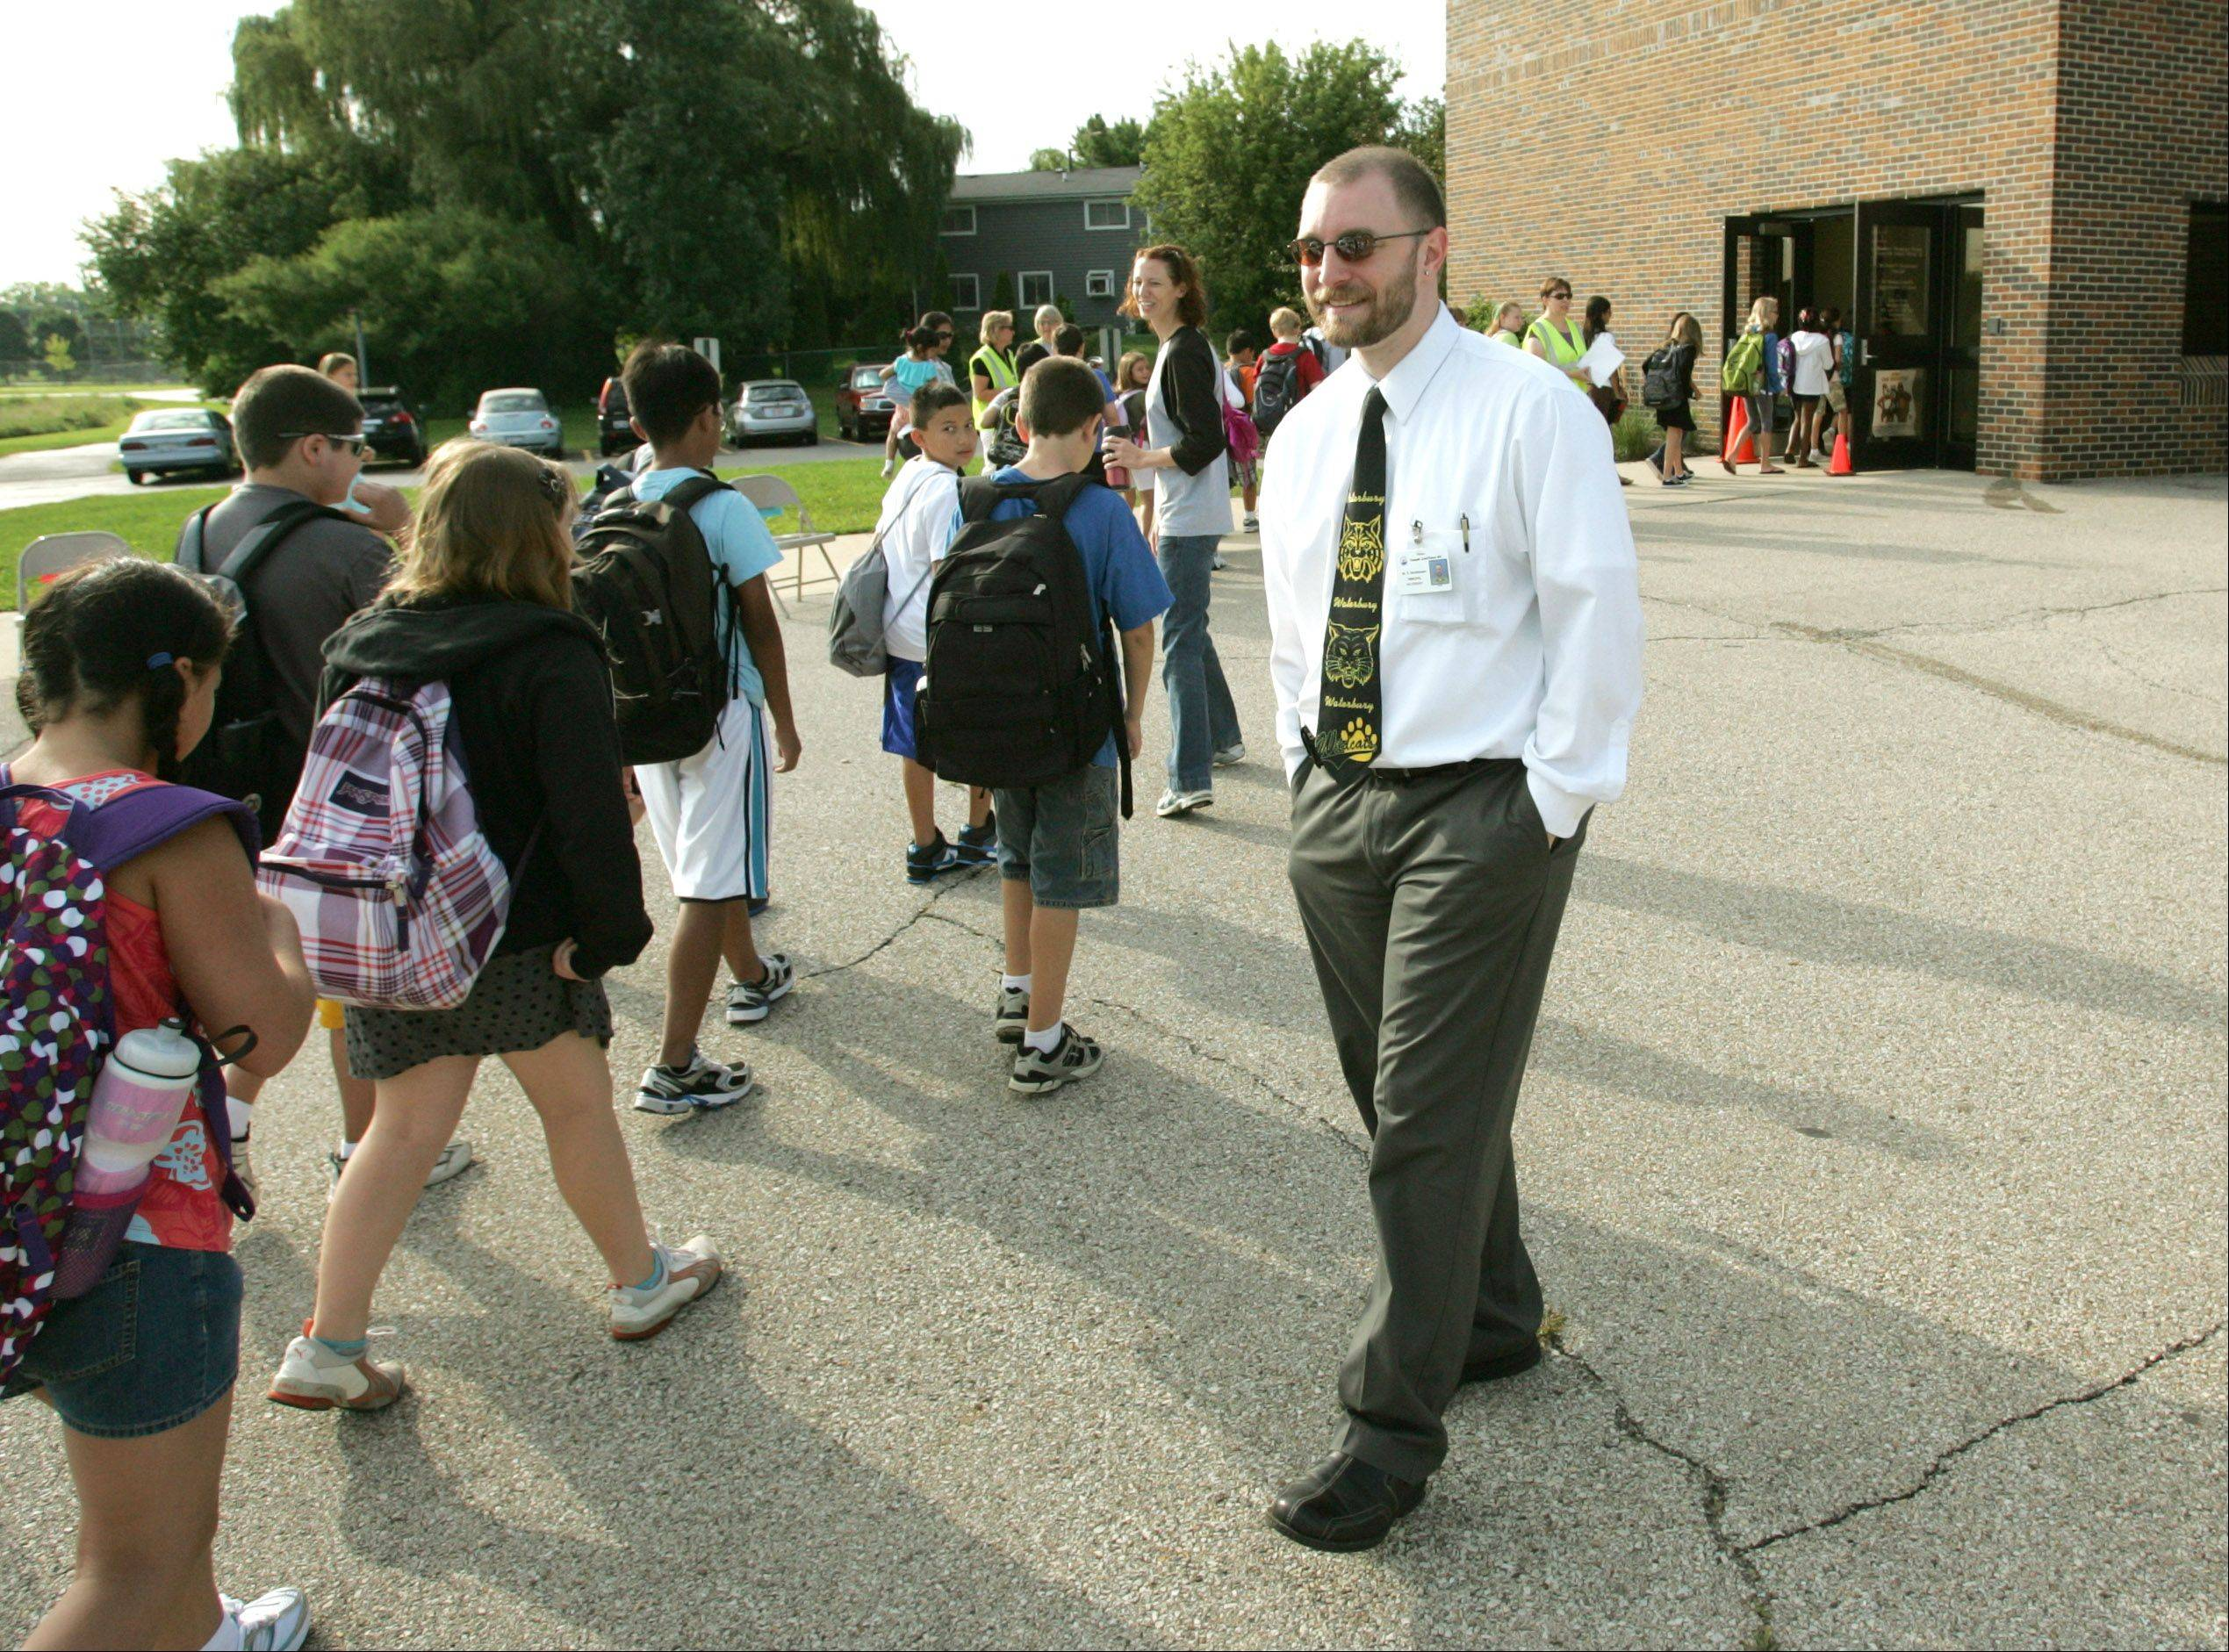 Dan Stockhausen, the new principal at Waterbury Elementary School in Roselle, greets students during their first week of classes. Stockhausen previously served as an assistant principal in Villa Park School District 45.